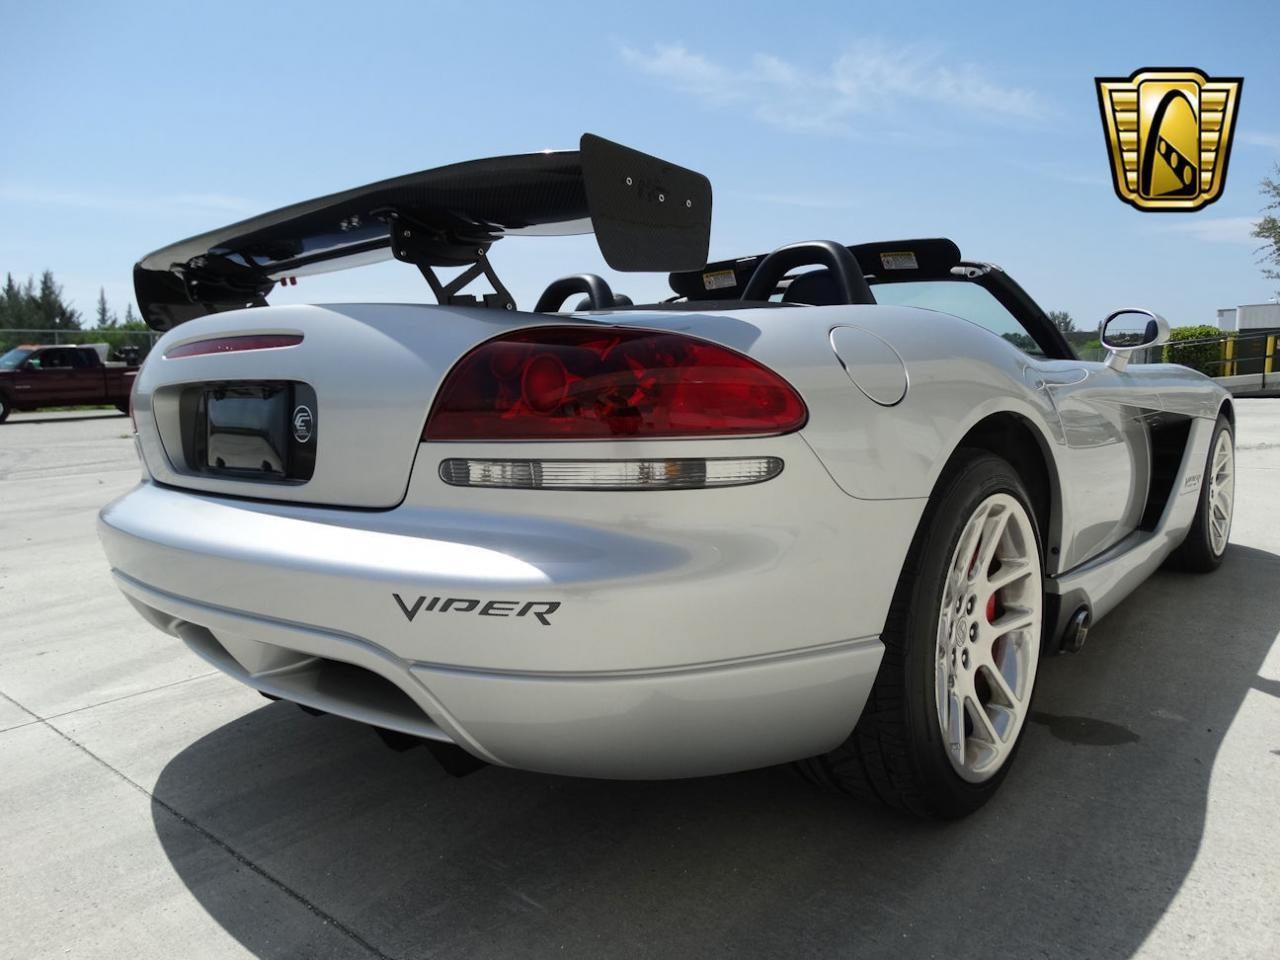 Large Picture of 2004 Dodge Viper - $54,000.00 Offered by Gateway Classic Cars - Fort Lauderdale - L6GU